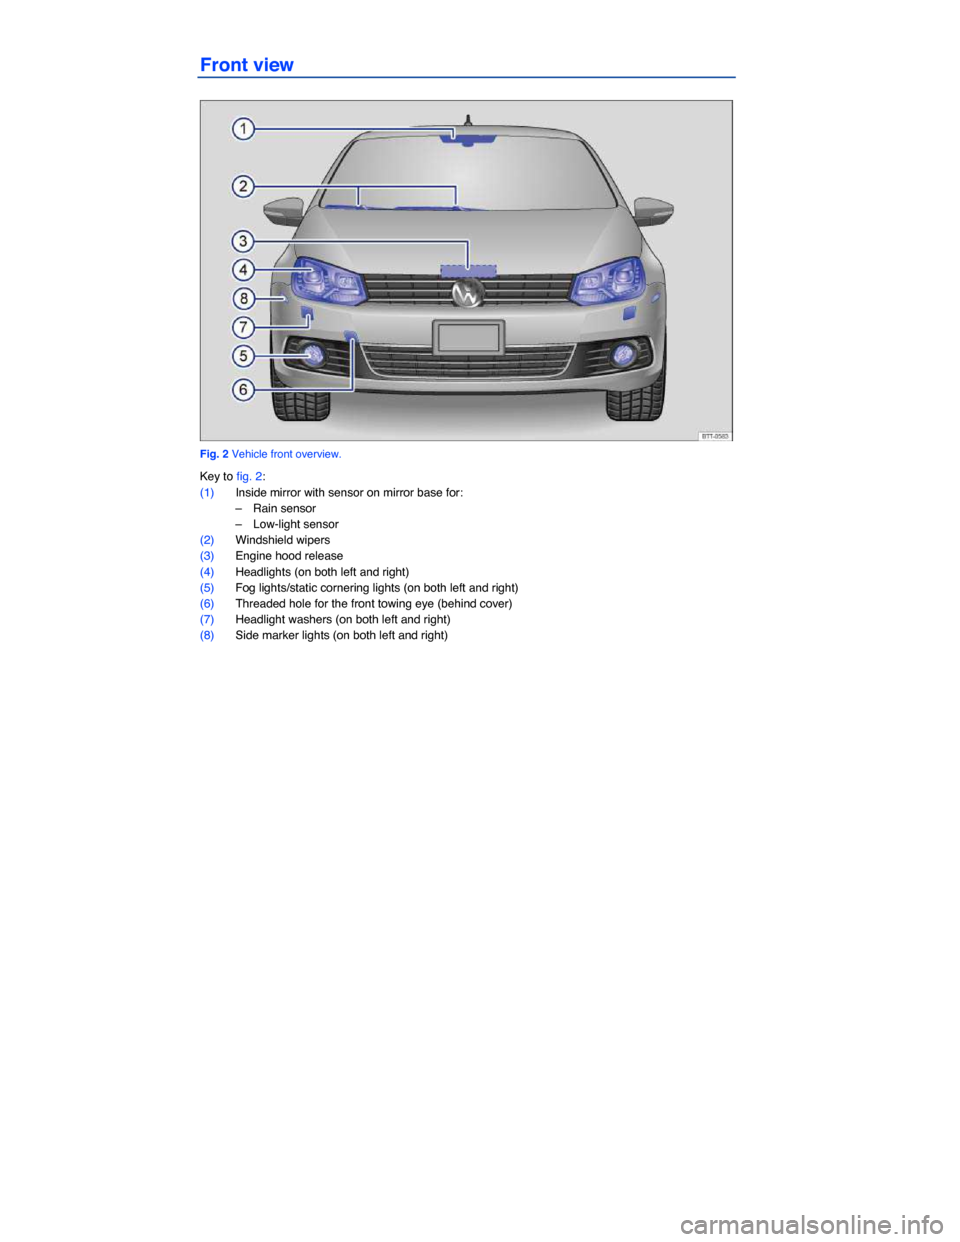 VOLKSWAGEN EOS 2014 1.G Owners Manual     Front view    Fig. 2 Vehicle front overview.  Key to fig. 2:  (1) Inside mirror with sensor on mirror base for:  –  Rain sensor   –  Low-light sensor   (2) Windshield wipers   (3) Engine hood